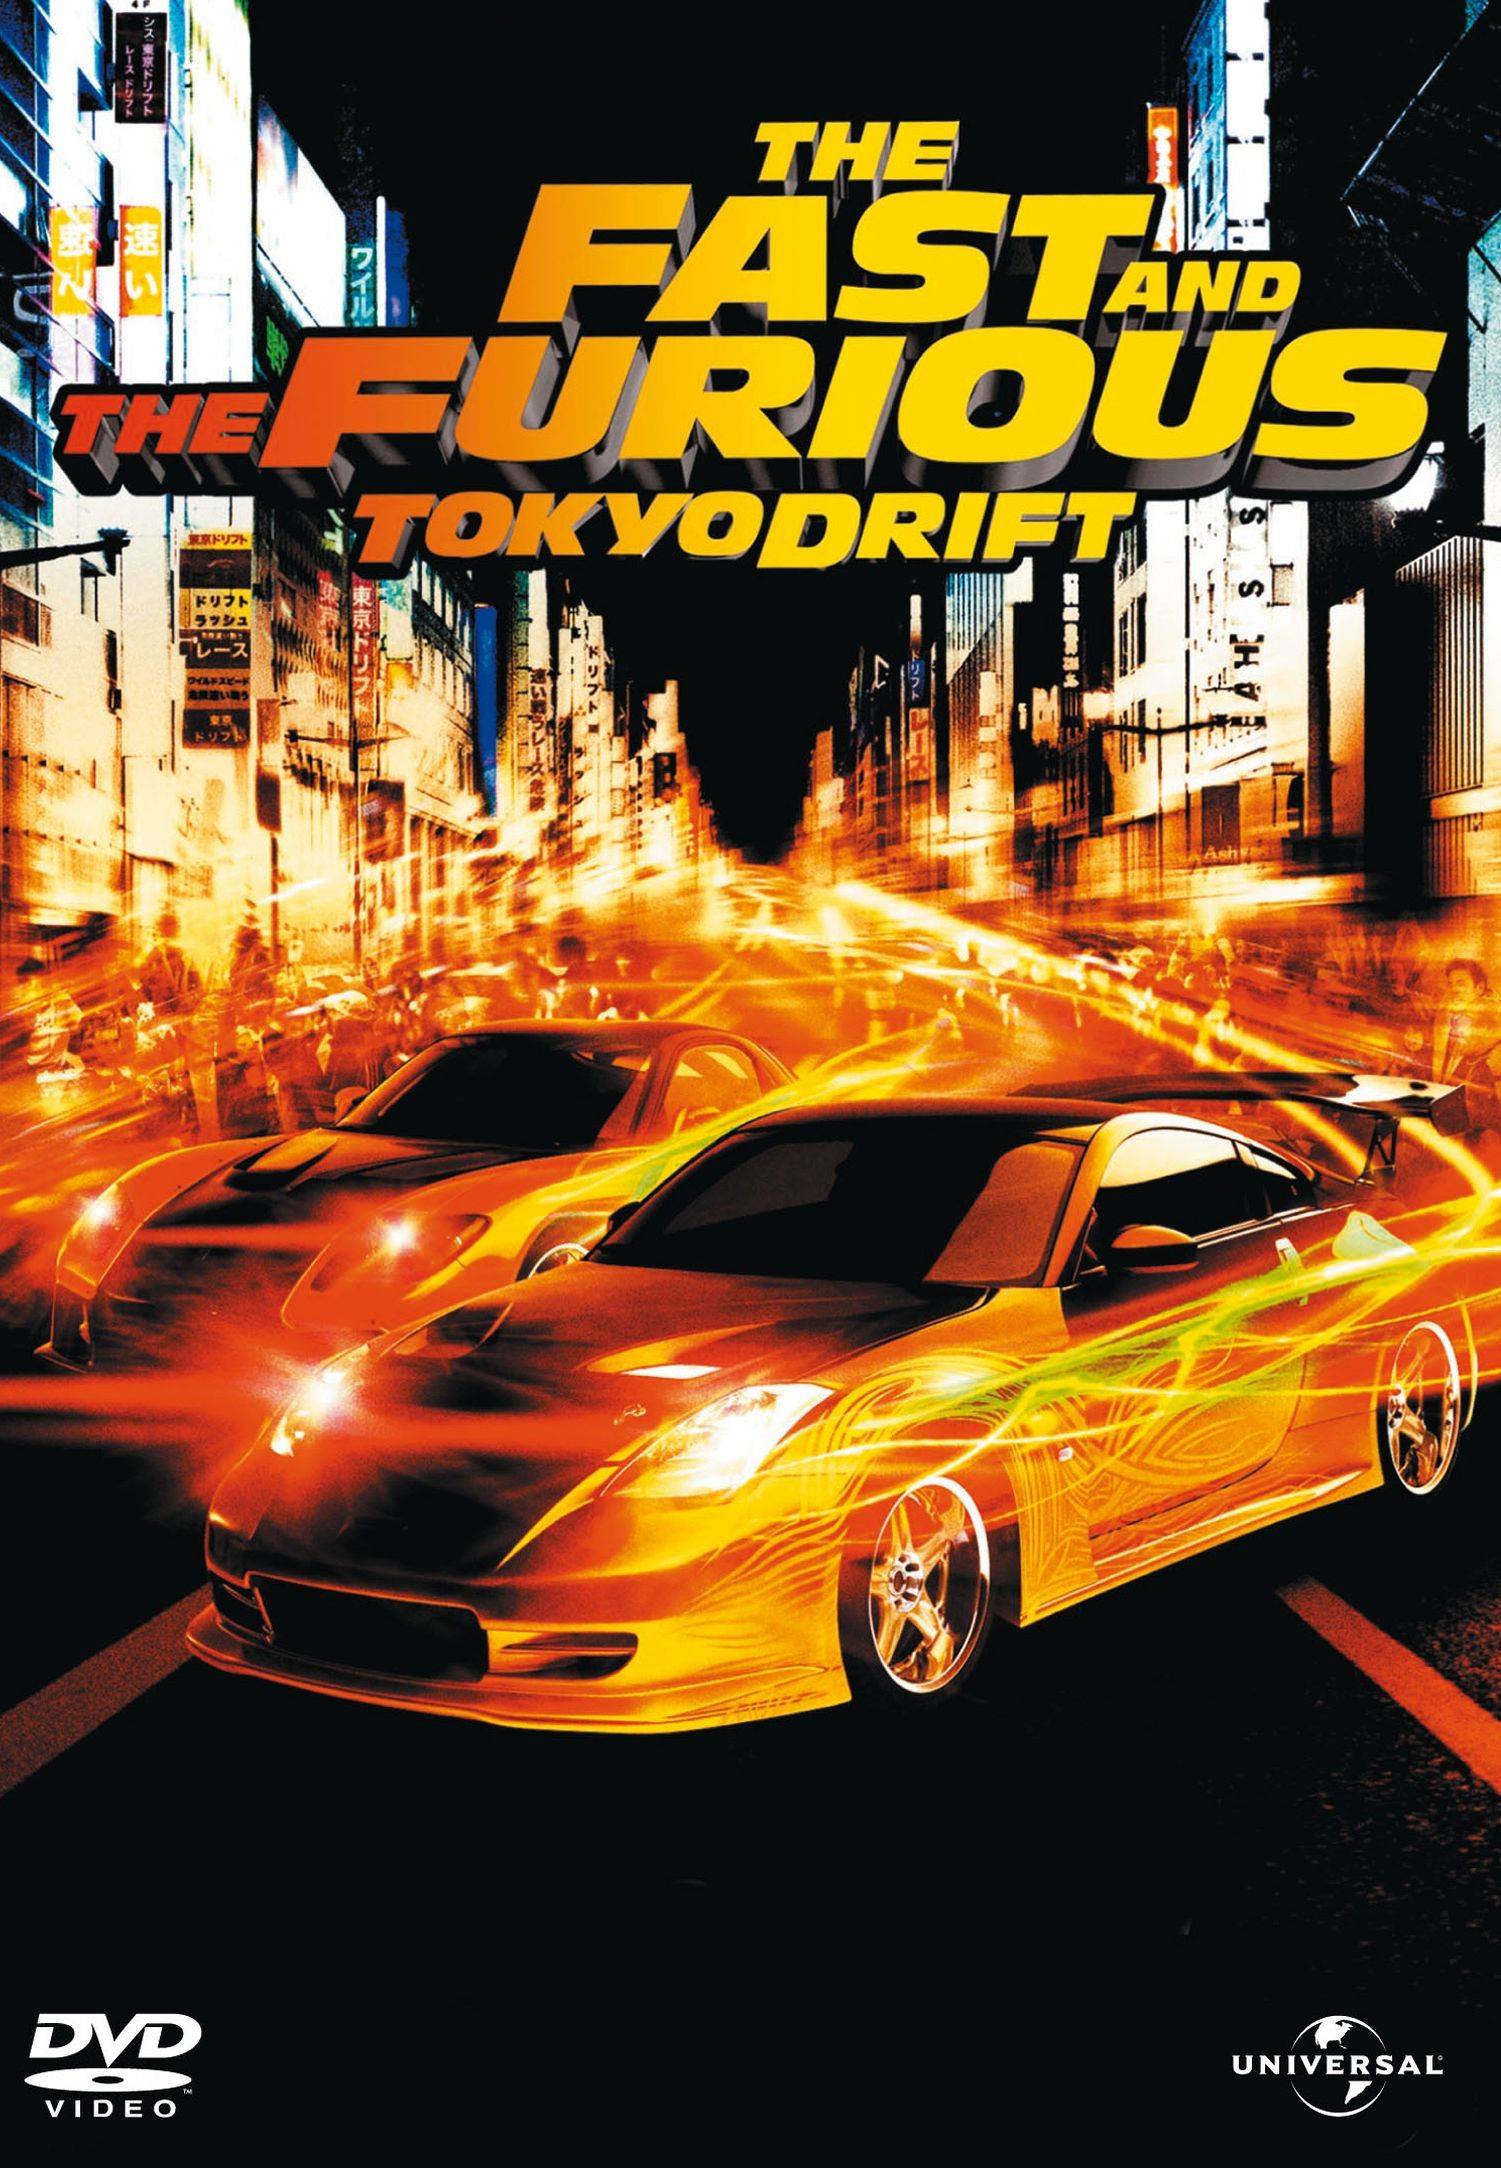 fast and furious poster high quality HD printable wallpapers tokyo drift 2006 car drifting